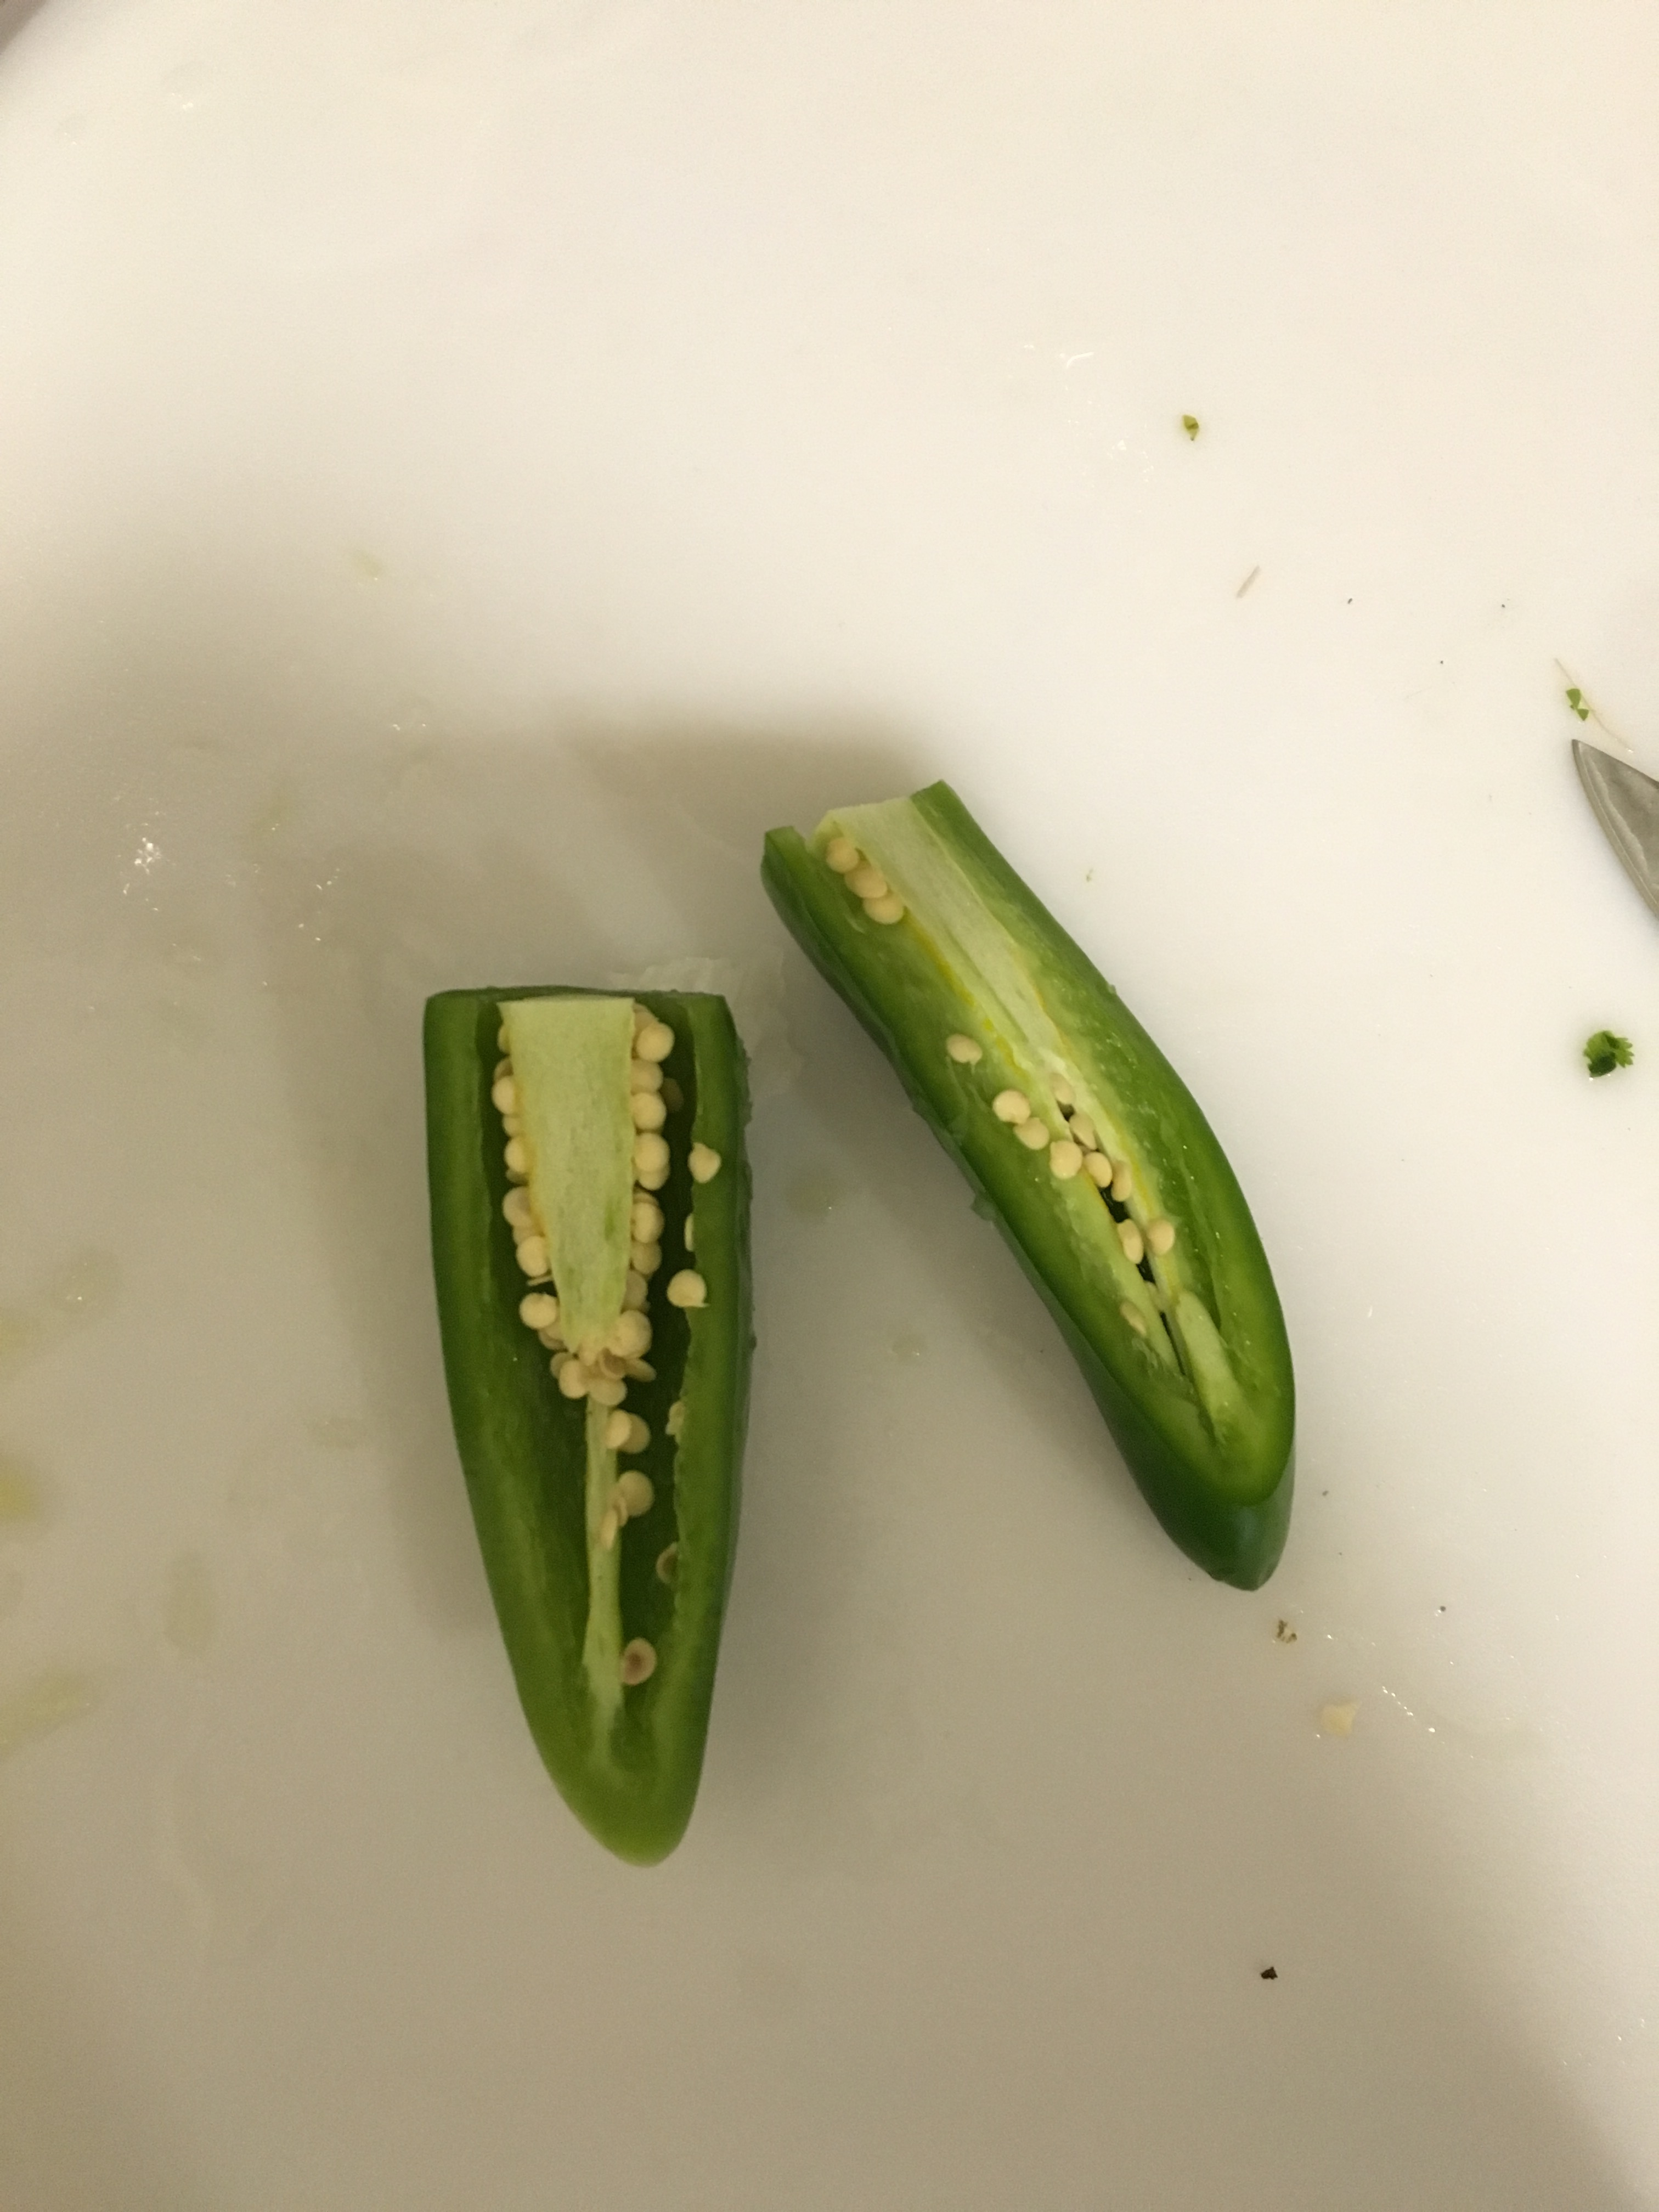 Picture of Rinse, Cut and Seed the Jalapeño